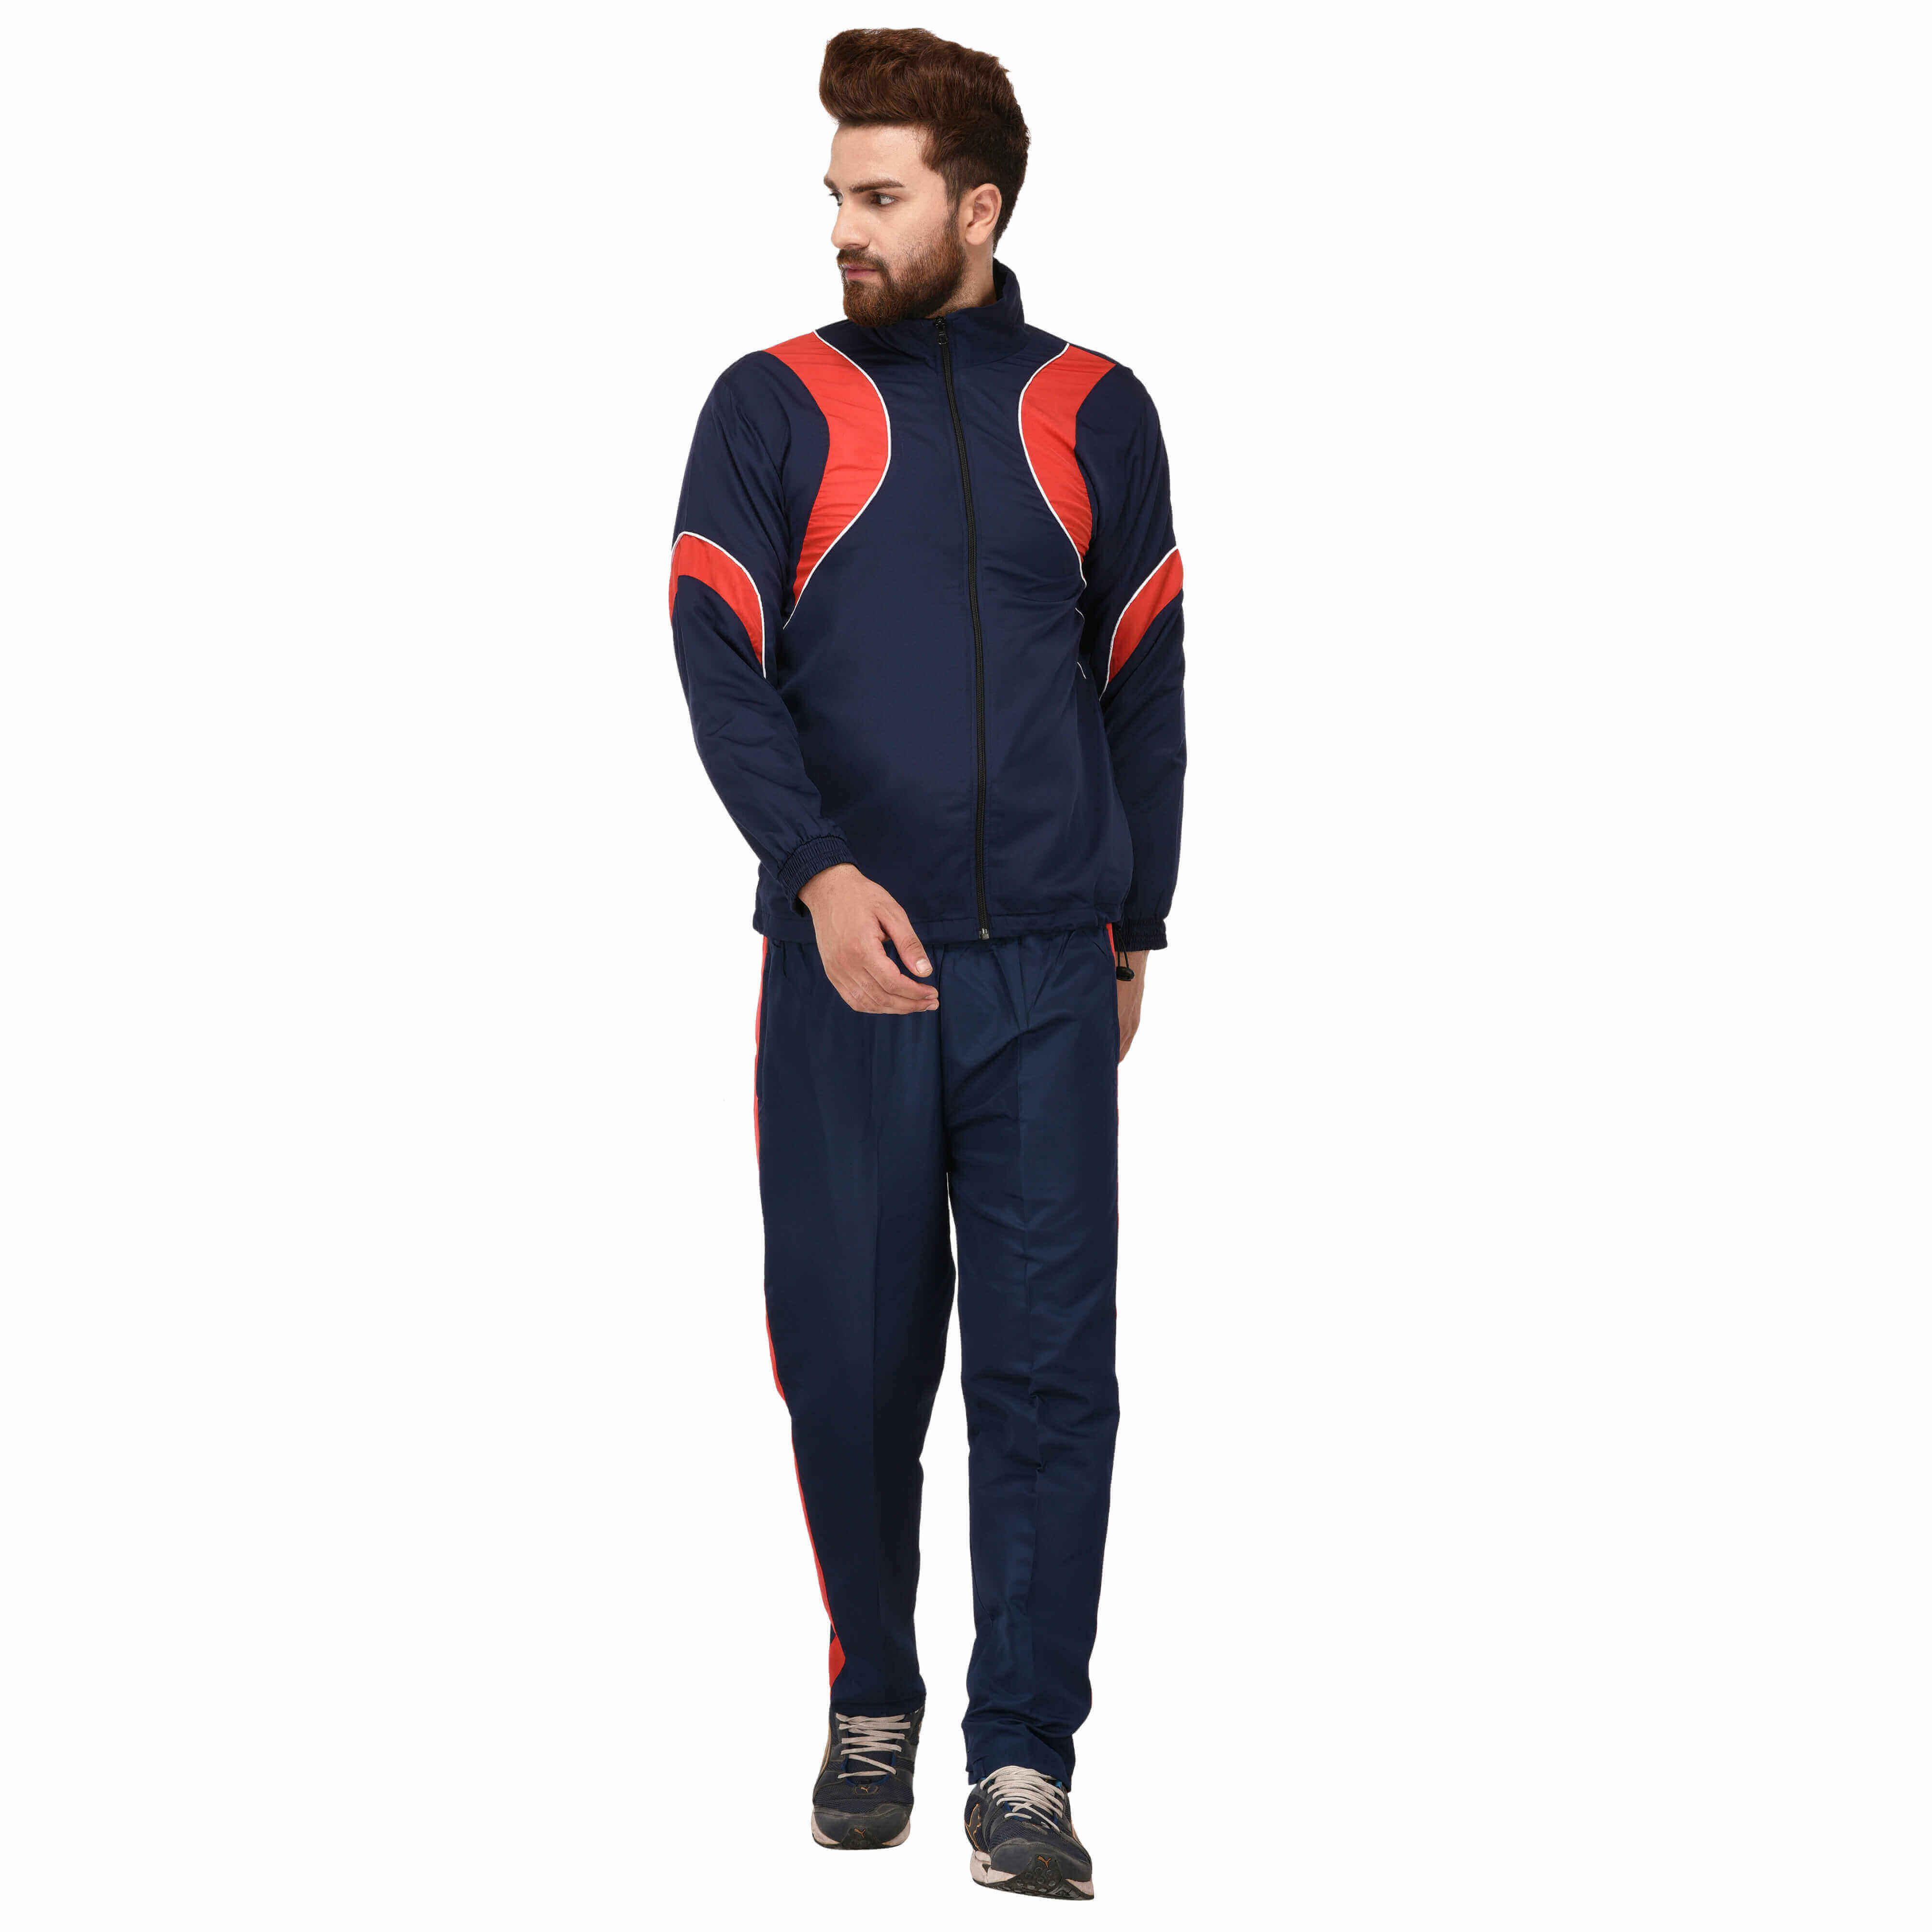 Red Tracksuit Manufacturers in Noida